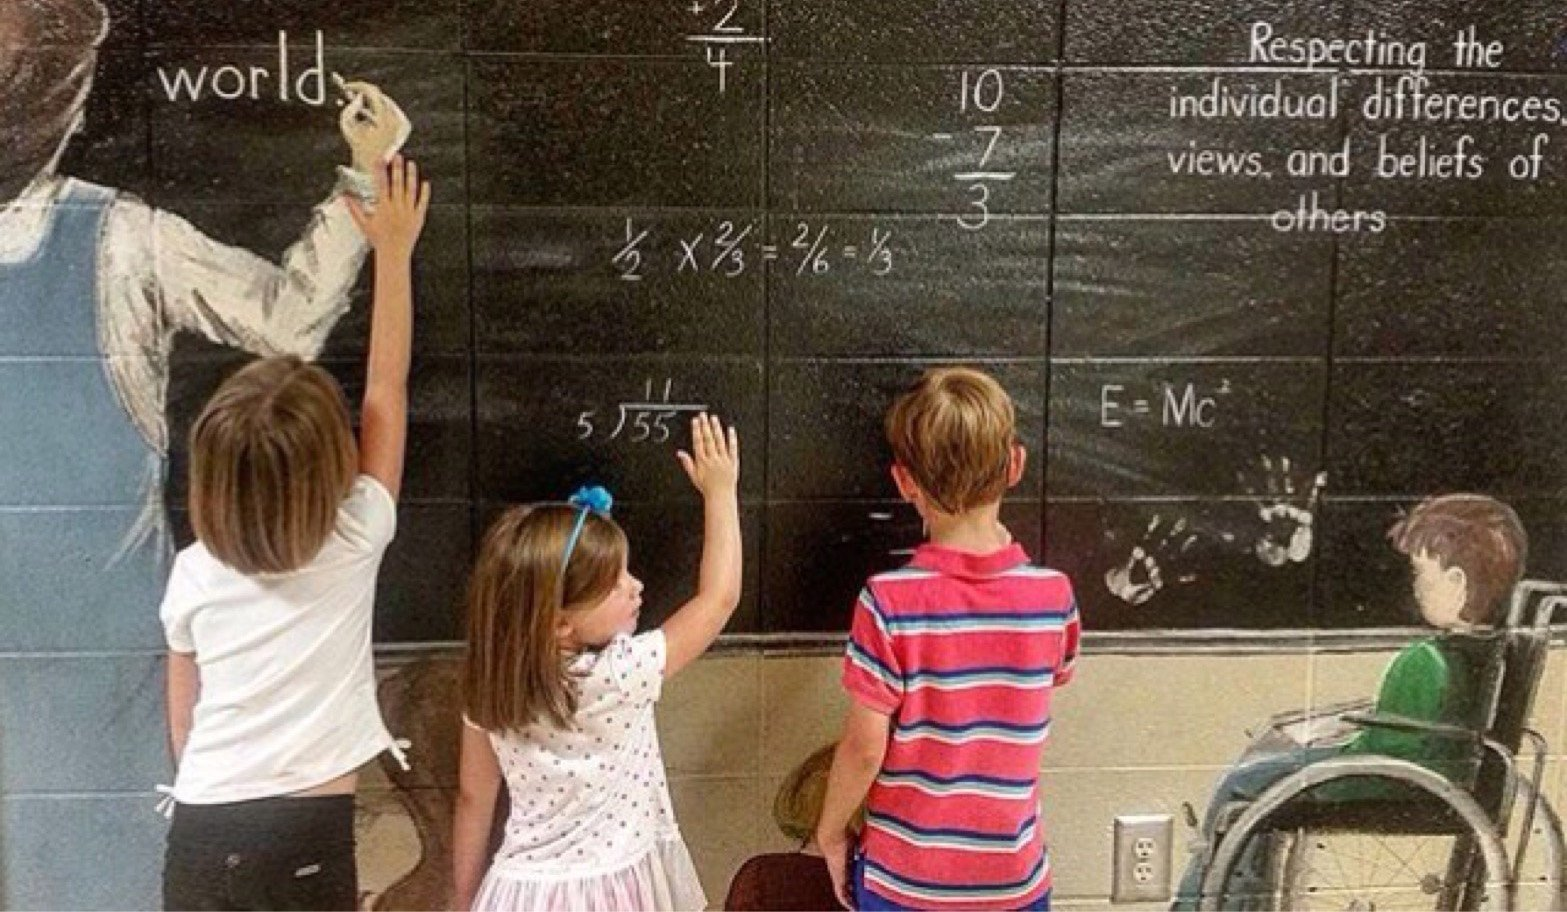 cropped_Students-writing-on-board